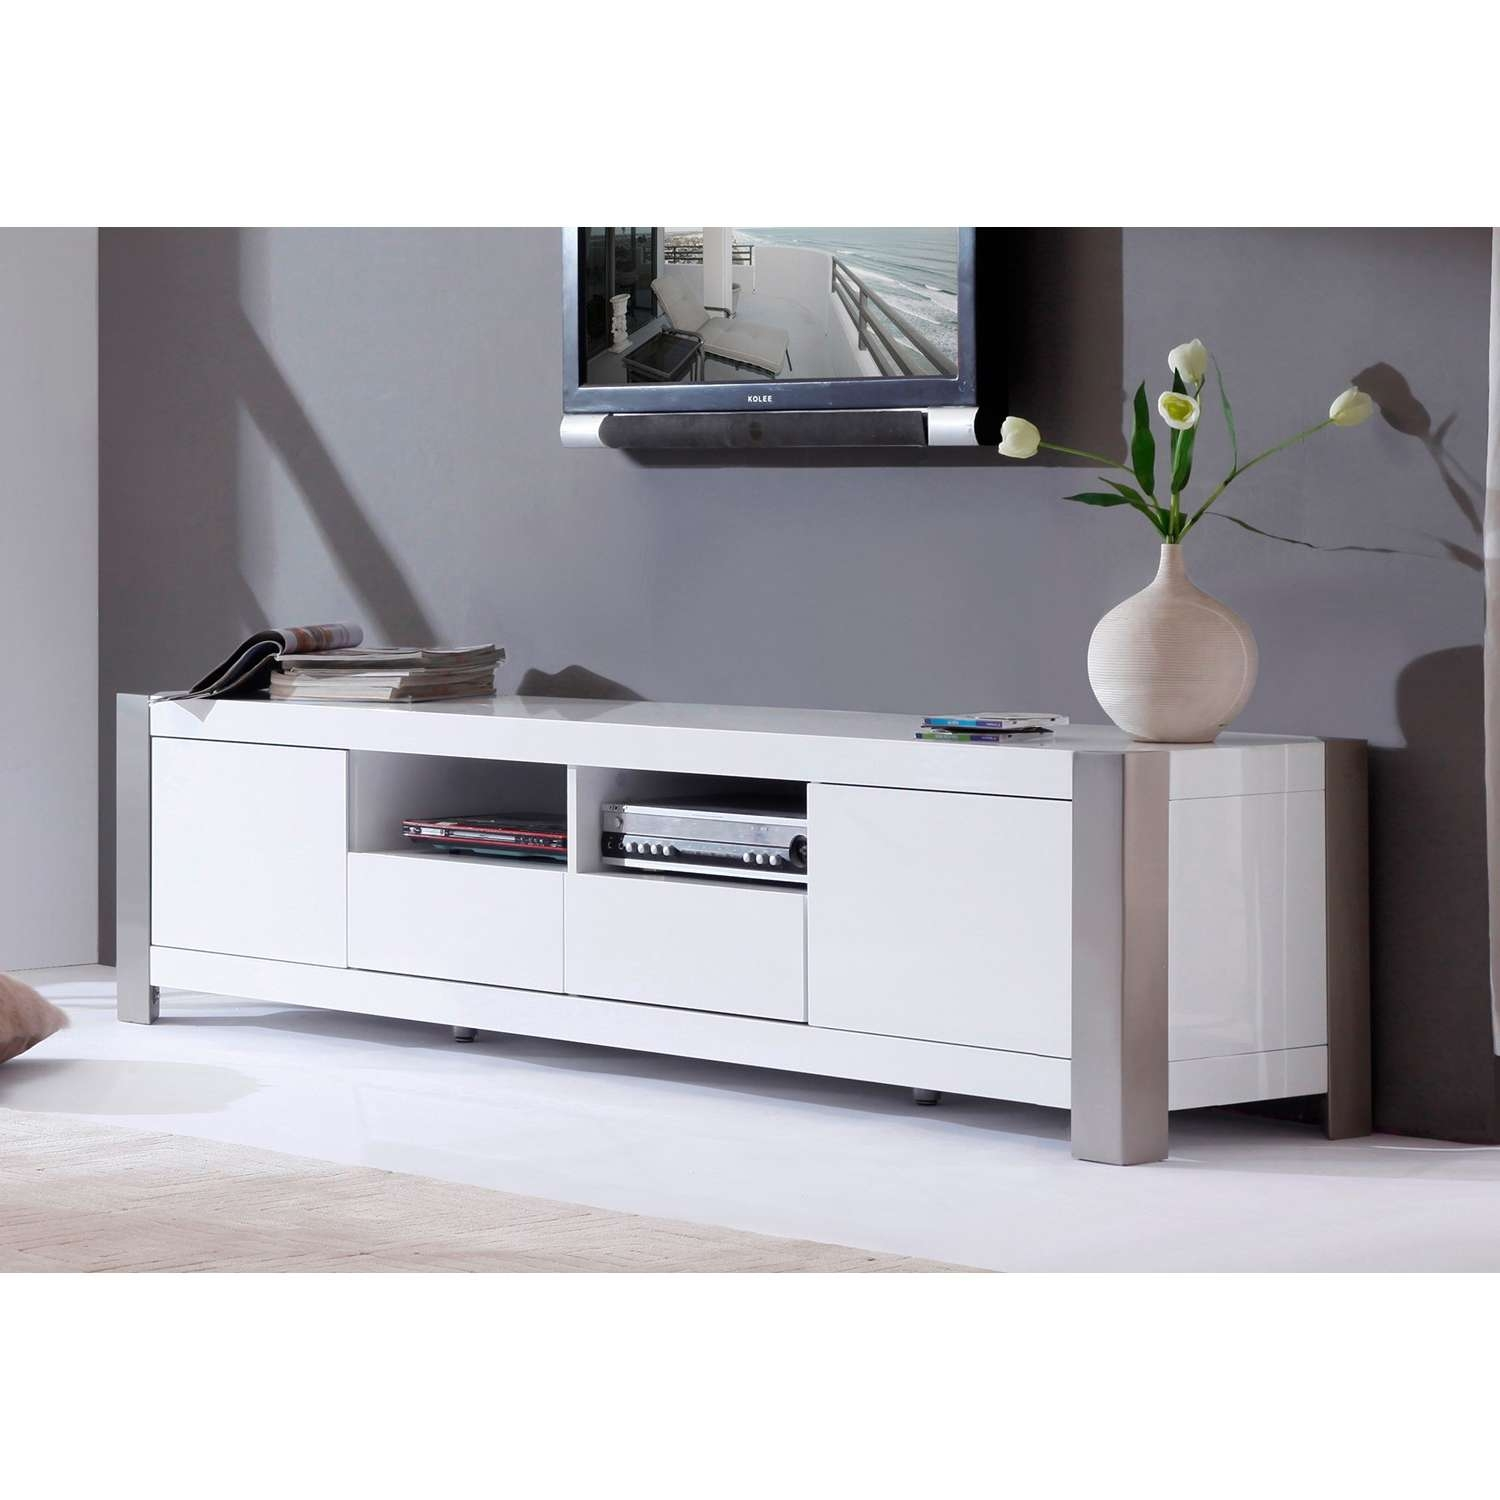 "B Modern Composer 79"" High Gloss White Tv Stand – Bm 100 Wht 